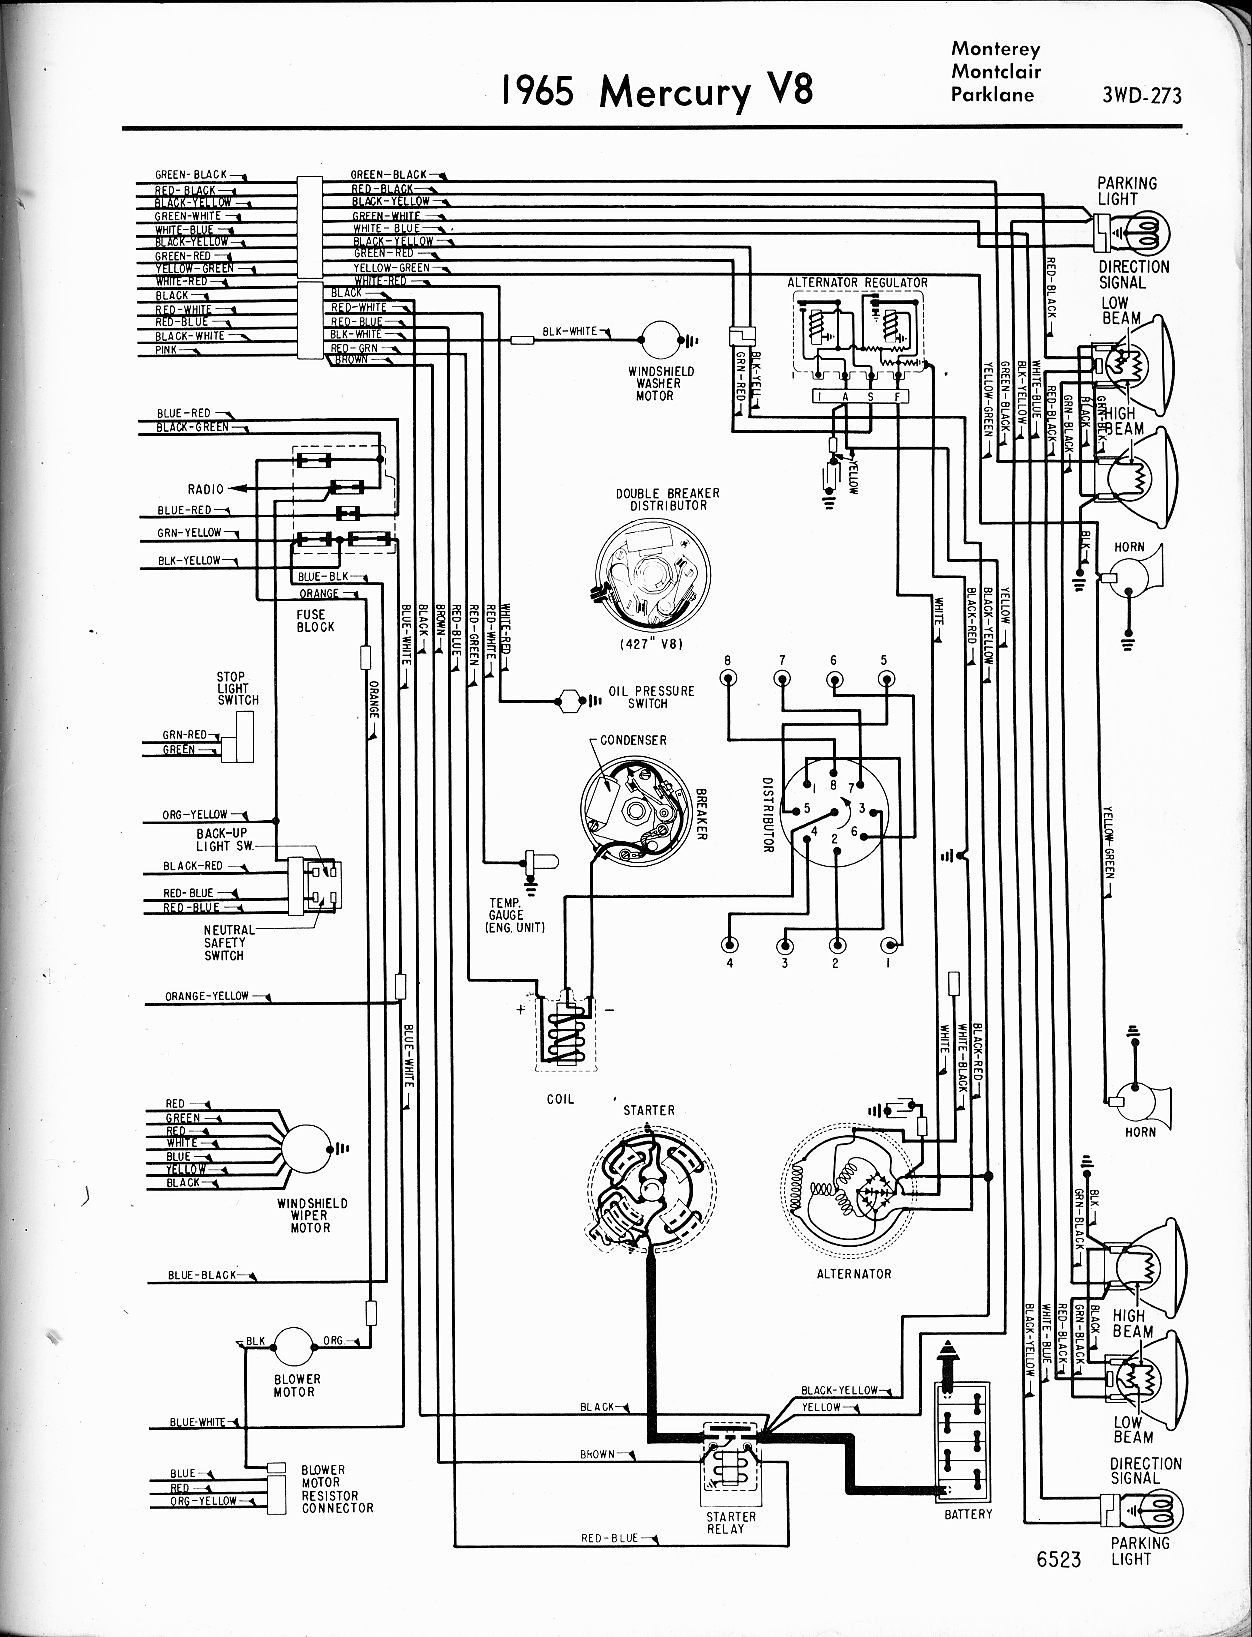 1967 Cougar Wiring Diagram - Wiring Diagram Perfomance on